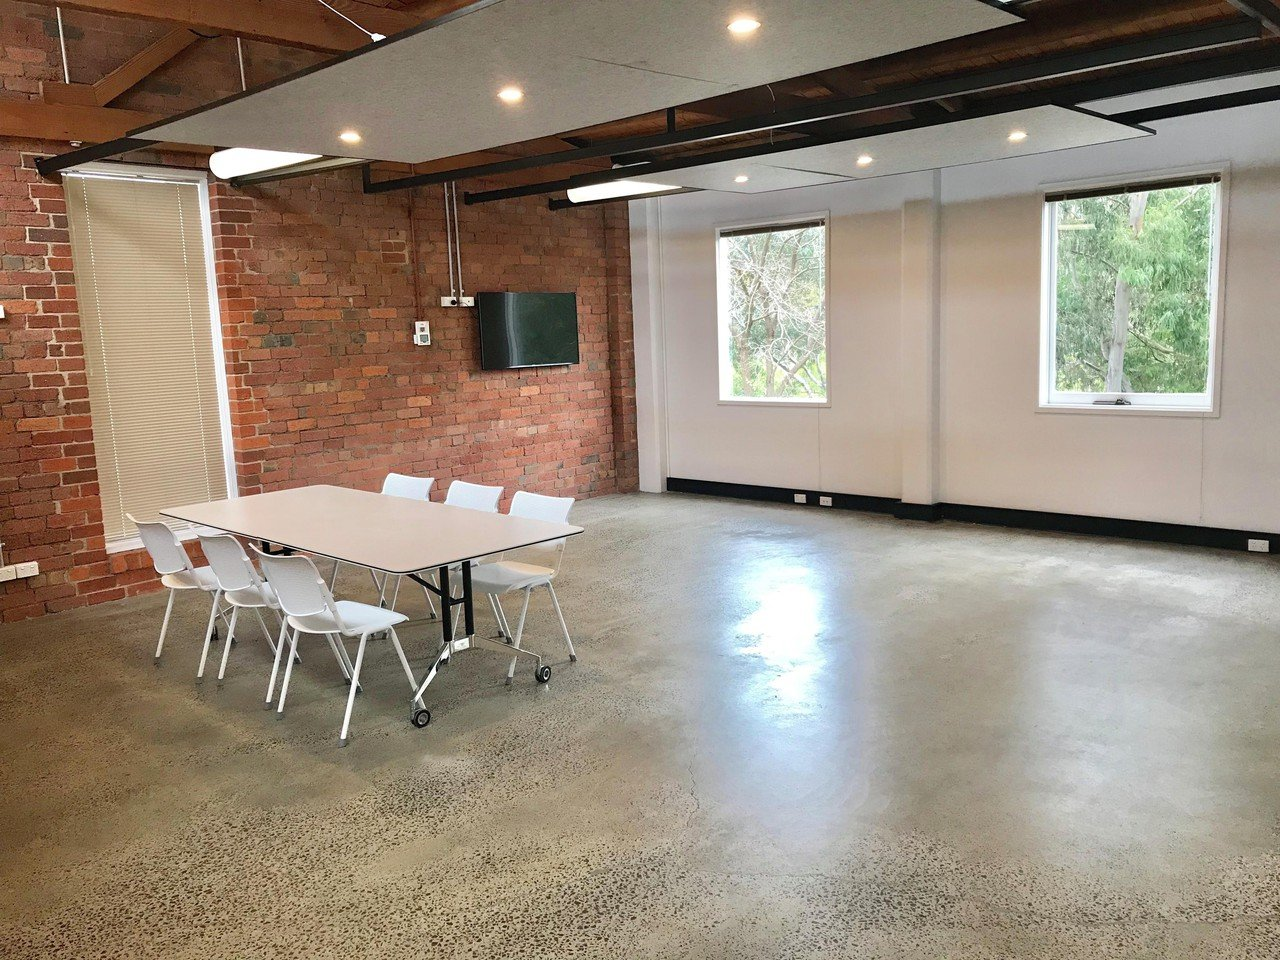 Melbourne workshop spaces Unusual Higher Spaces - Rooms 2 and 3 image 4